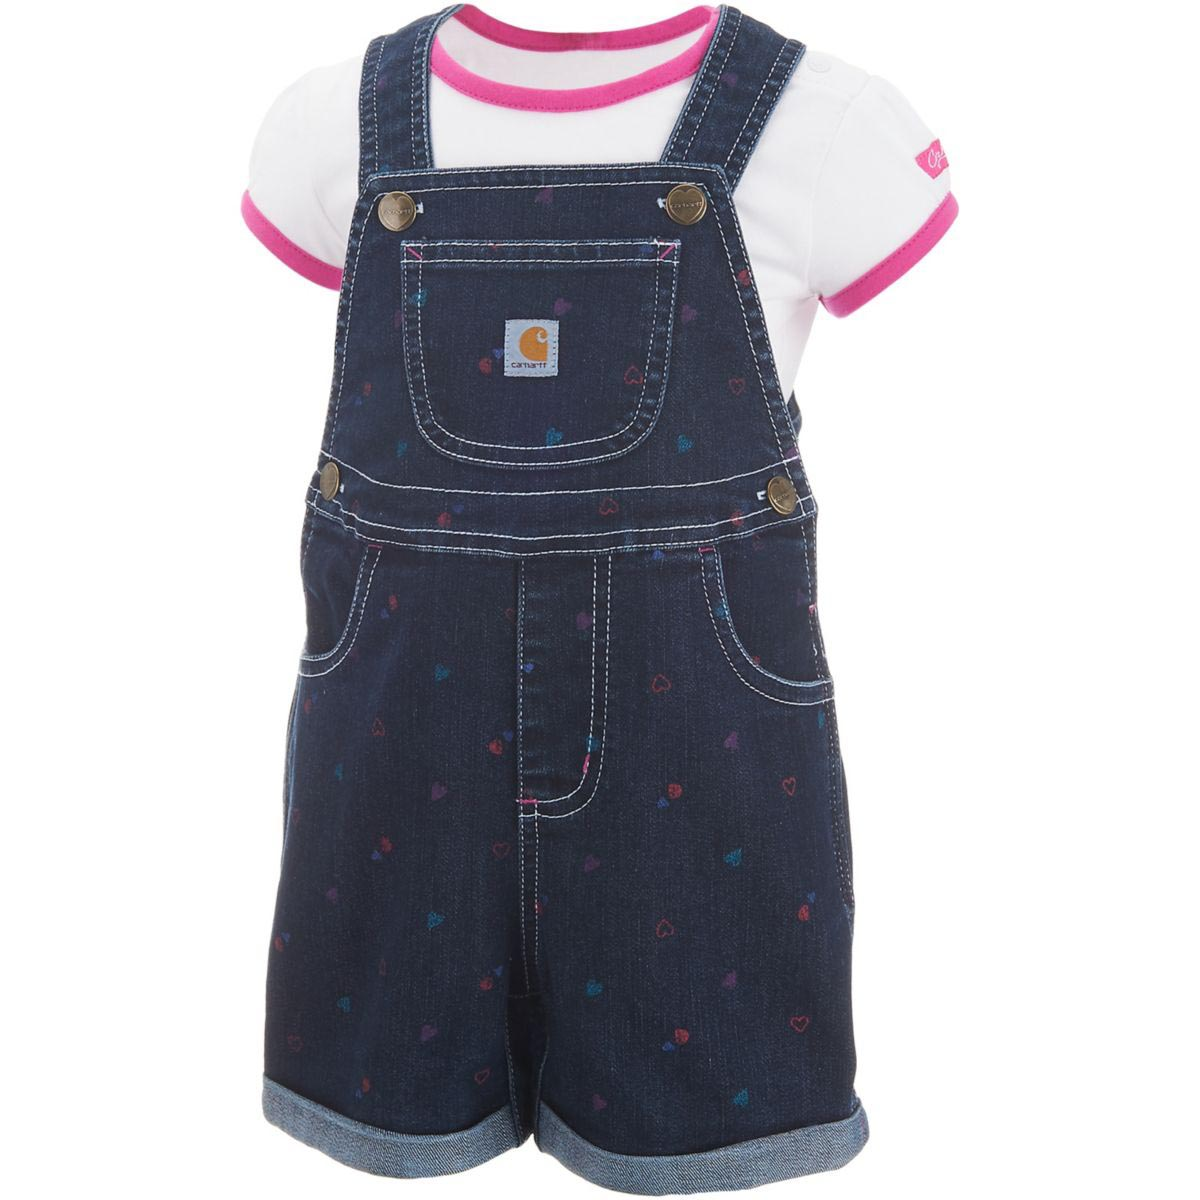 Carhartt Infant Girls' Printed Denim Shortall Set